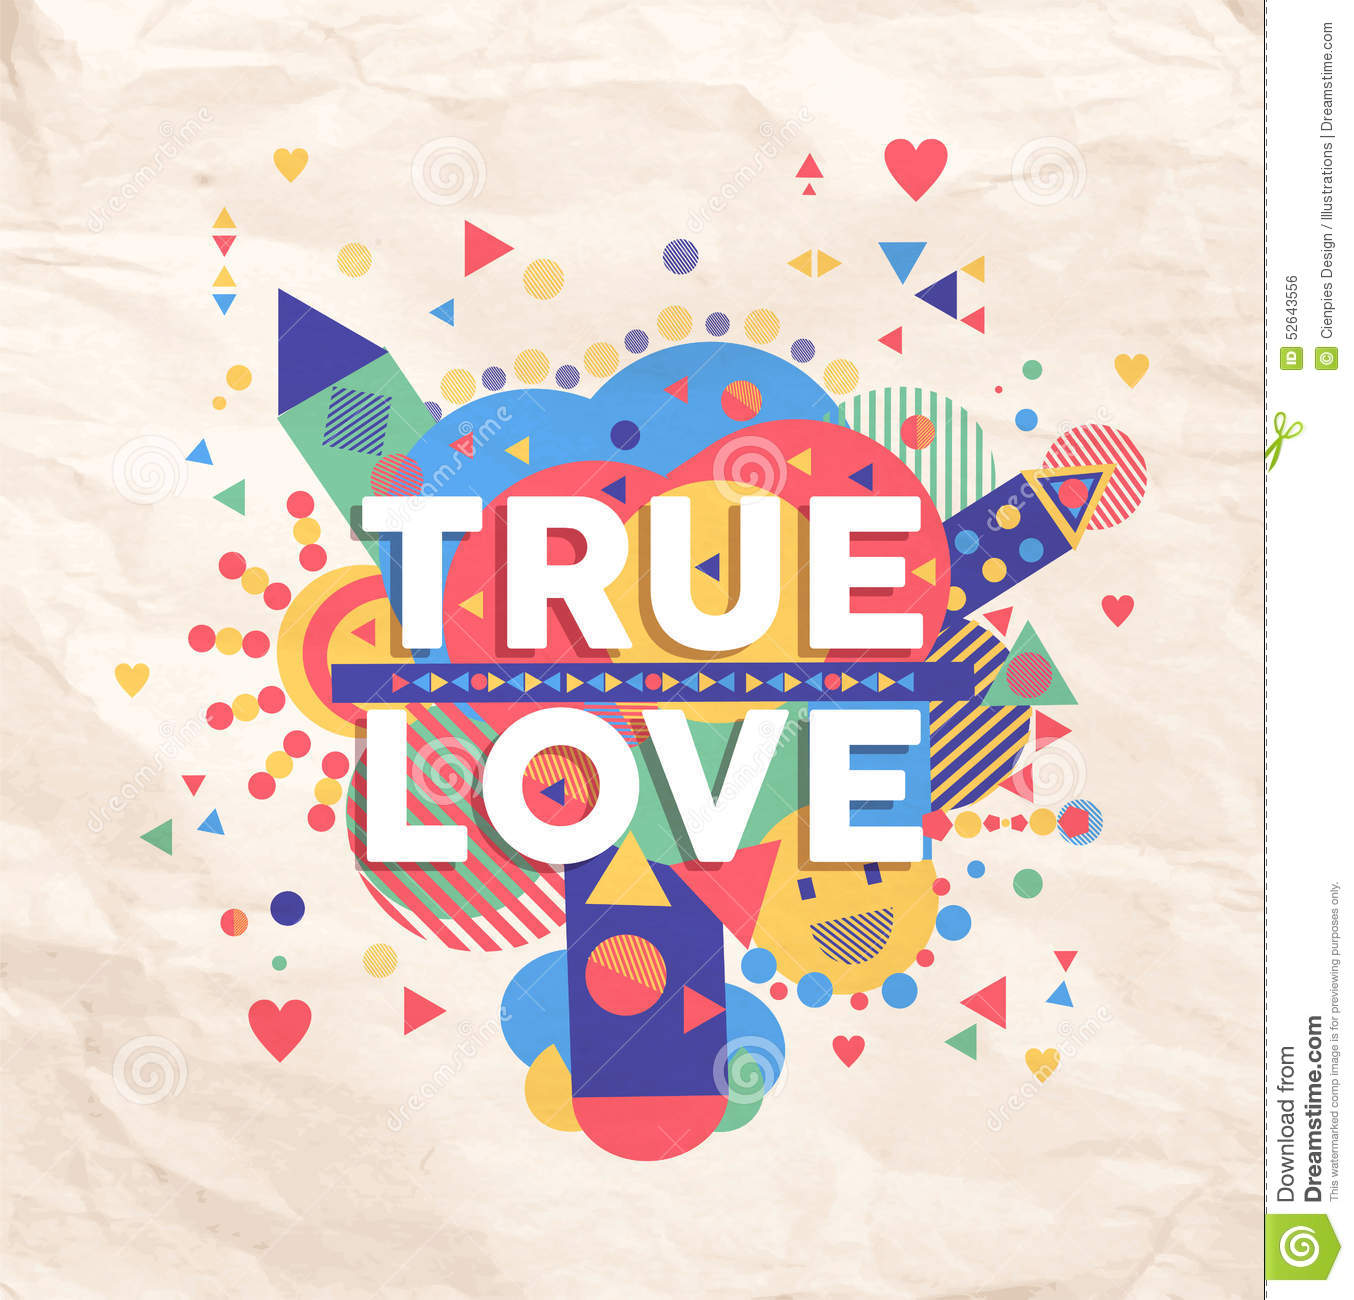 True love quote poster designQuote Poster Design